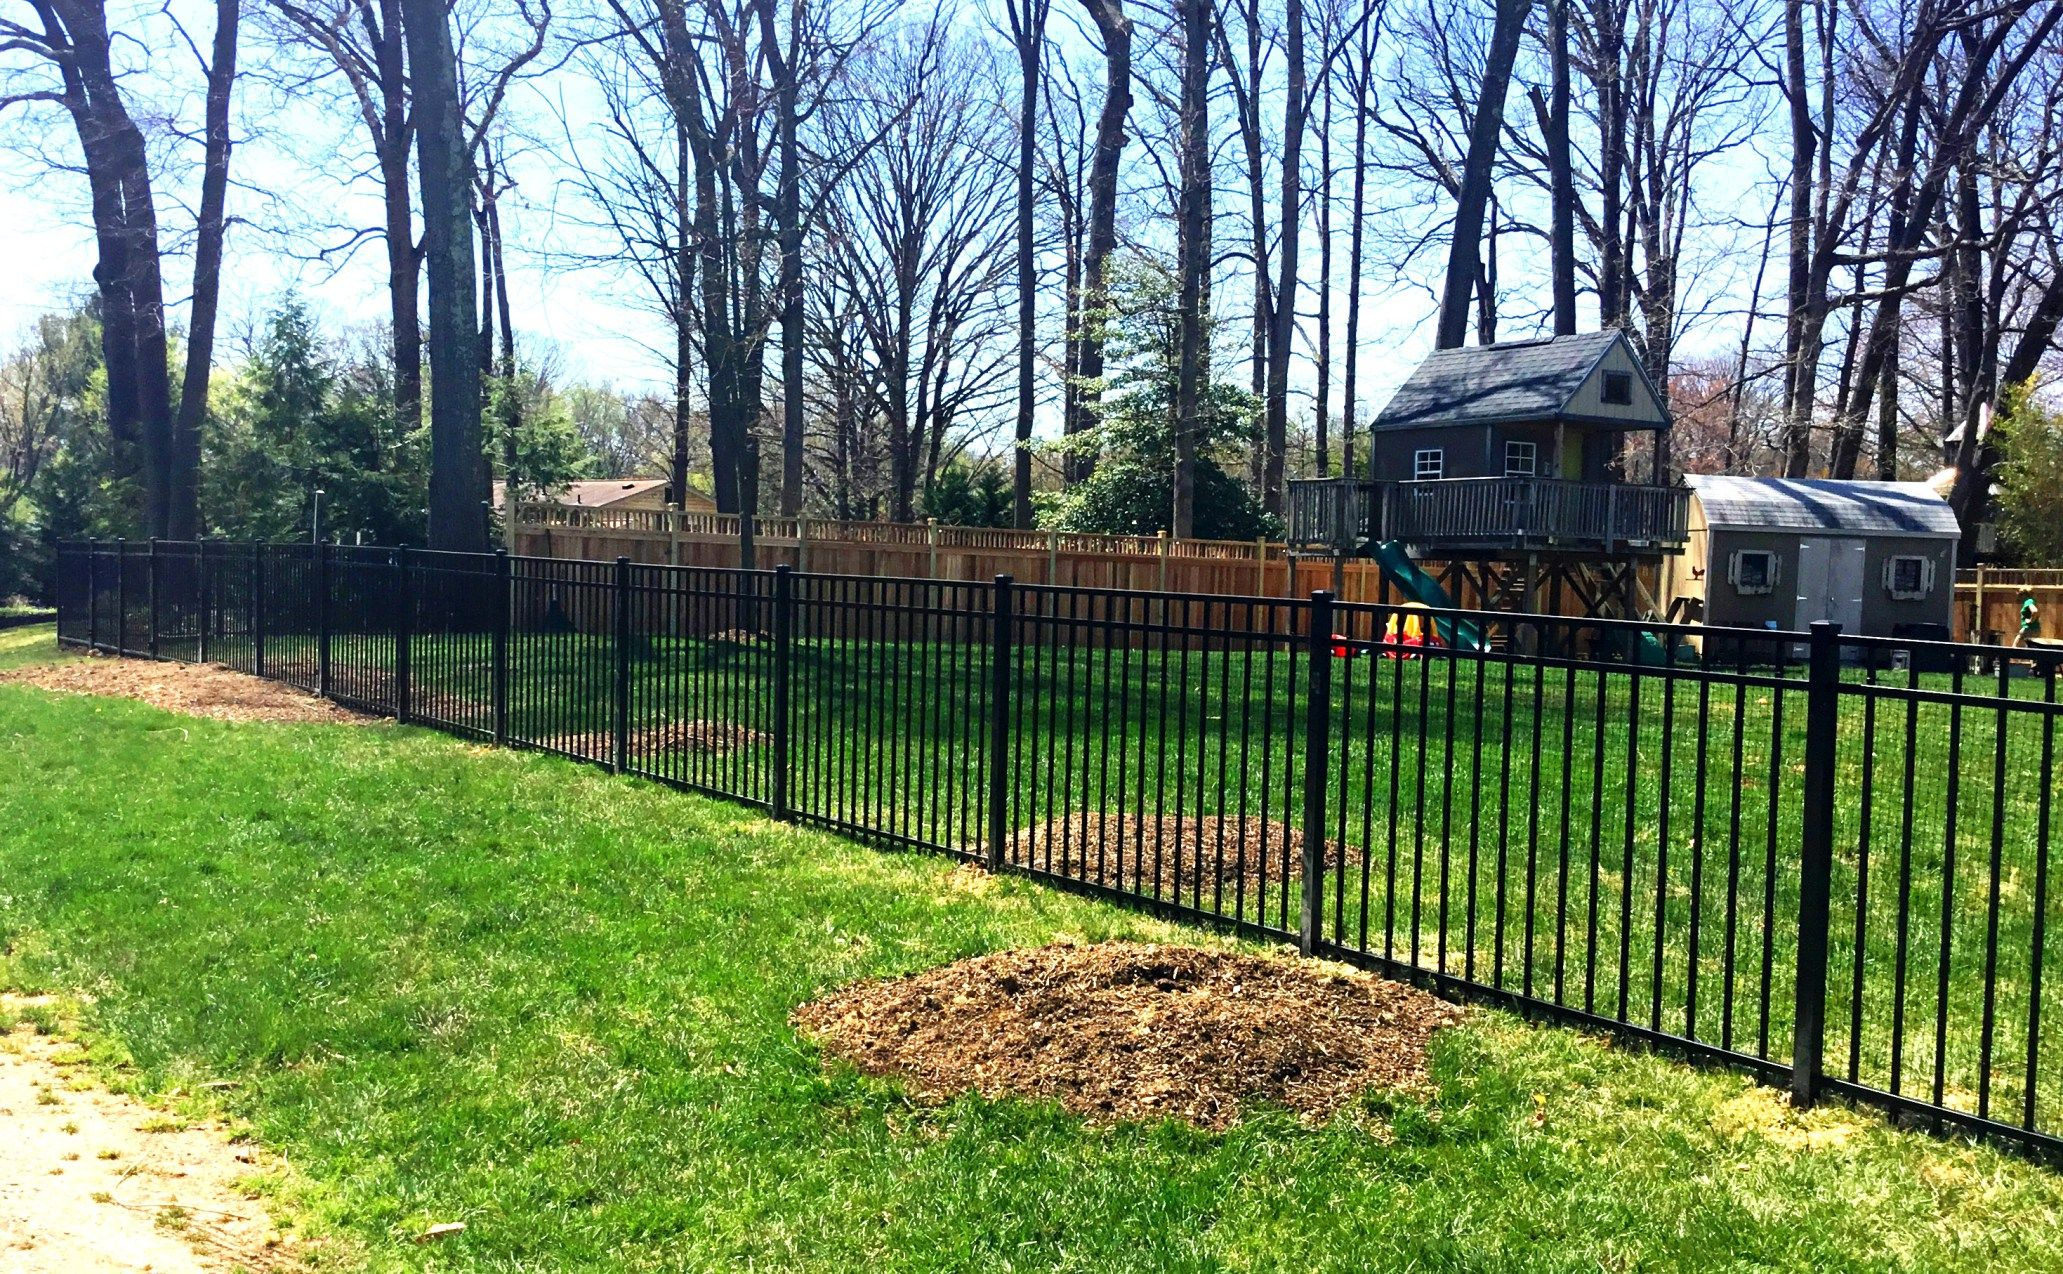 Fence Designs Lions Fence Award Winning Local Co Fence Design